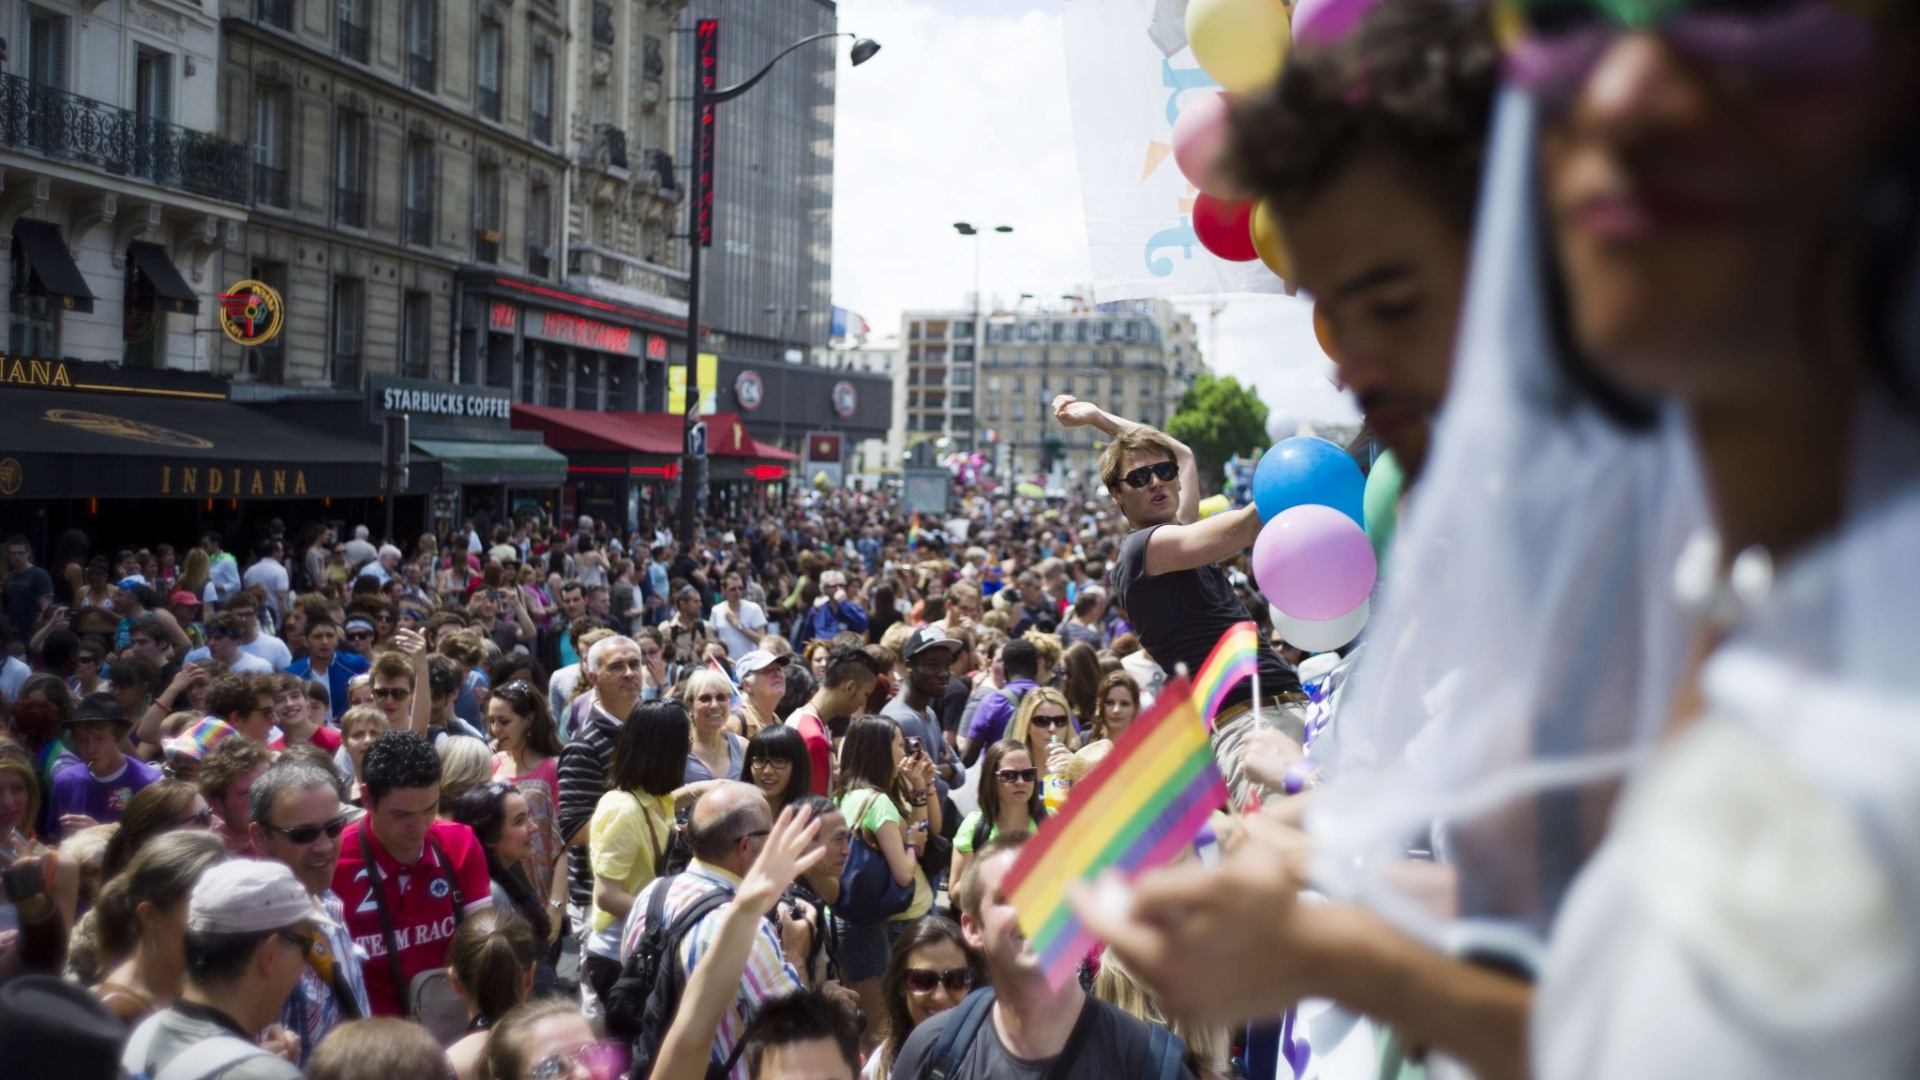 30.jun.2012 - Pessoas participam da marcha anual do Orgulho Gay em Paris (Frana)